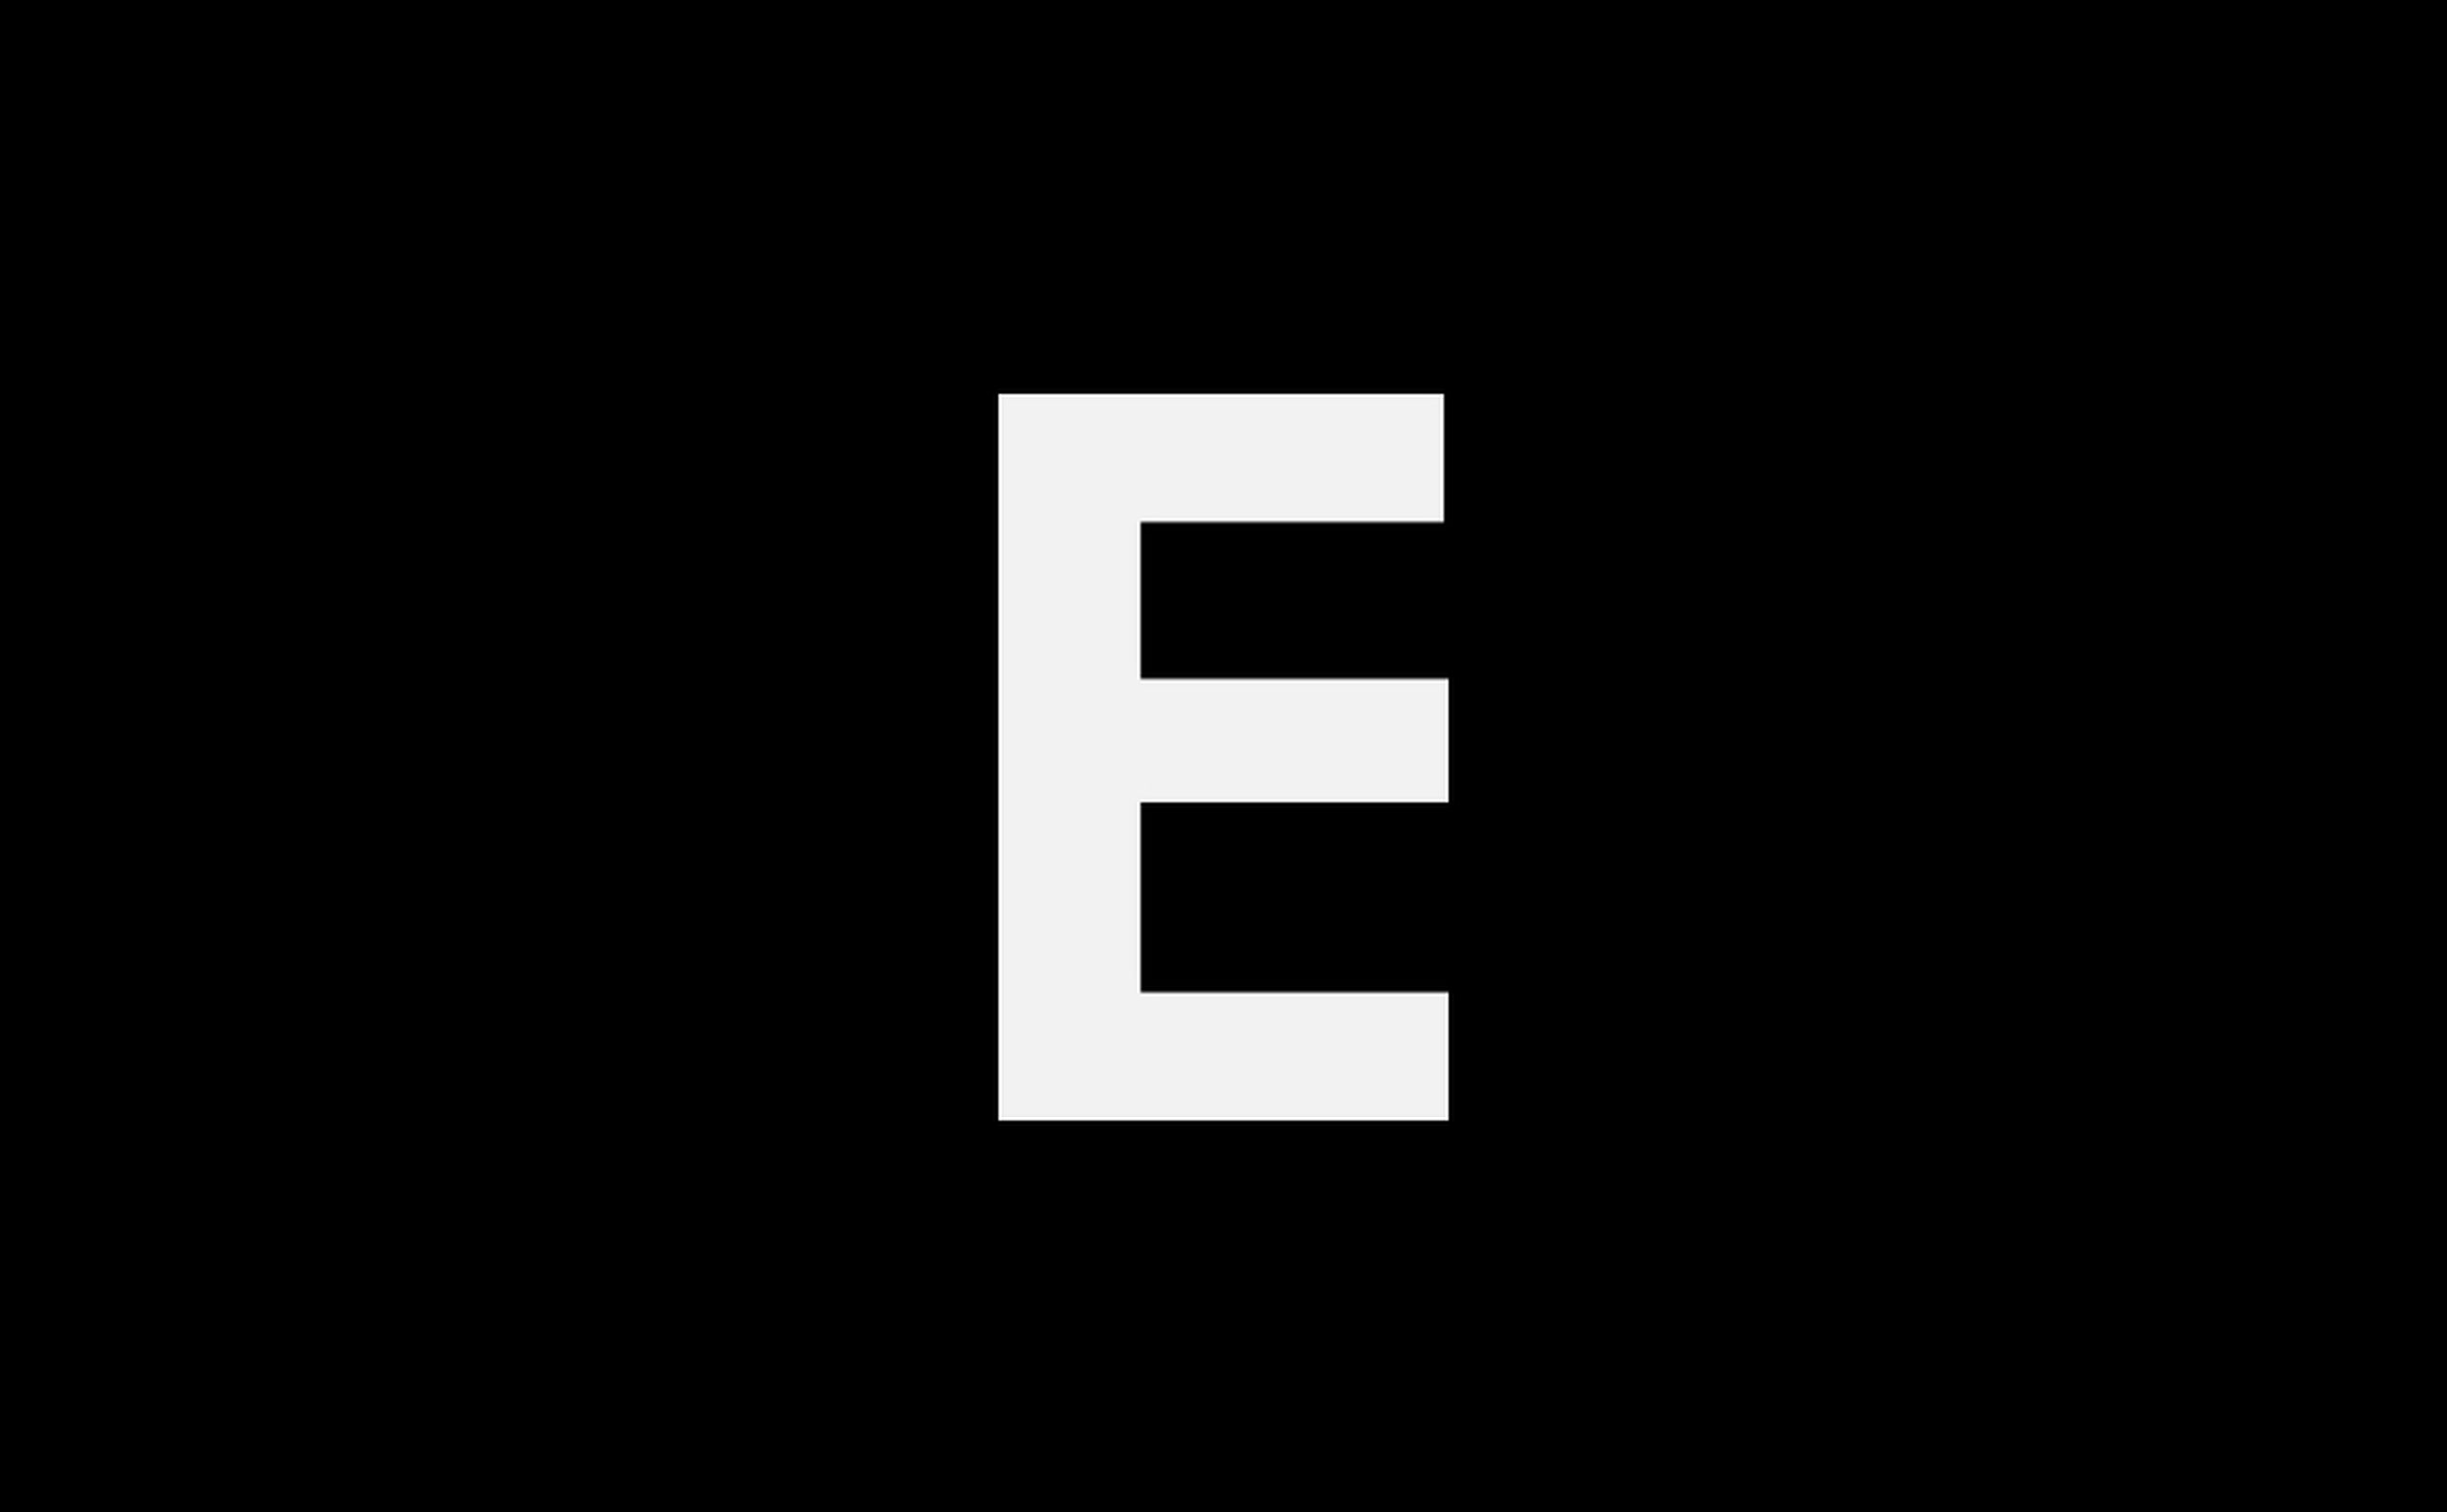 water, architecture, built structure, connection, bridge, bridge - man made structure, motion, flowing water, nature, river, building exterior, arch bridge, long exposure, plant, waterfall, tree, arch, day, no people, outdoors, flowing